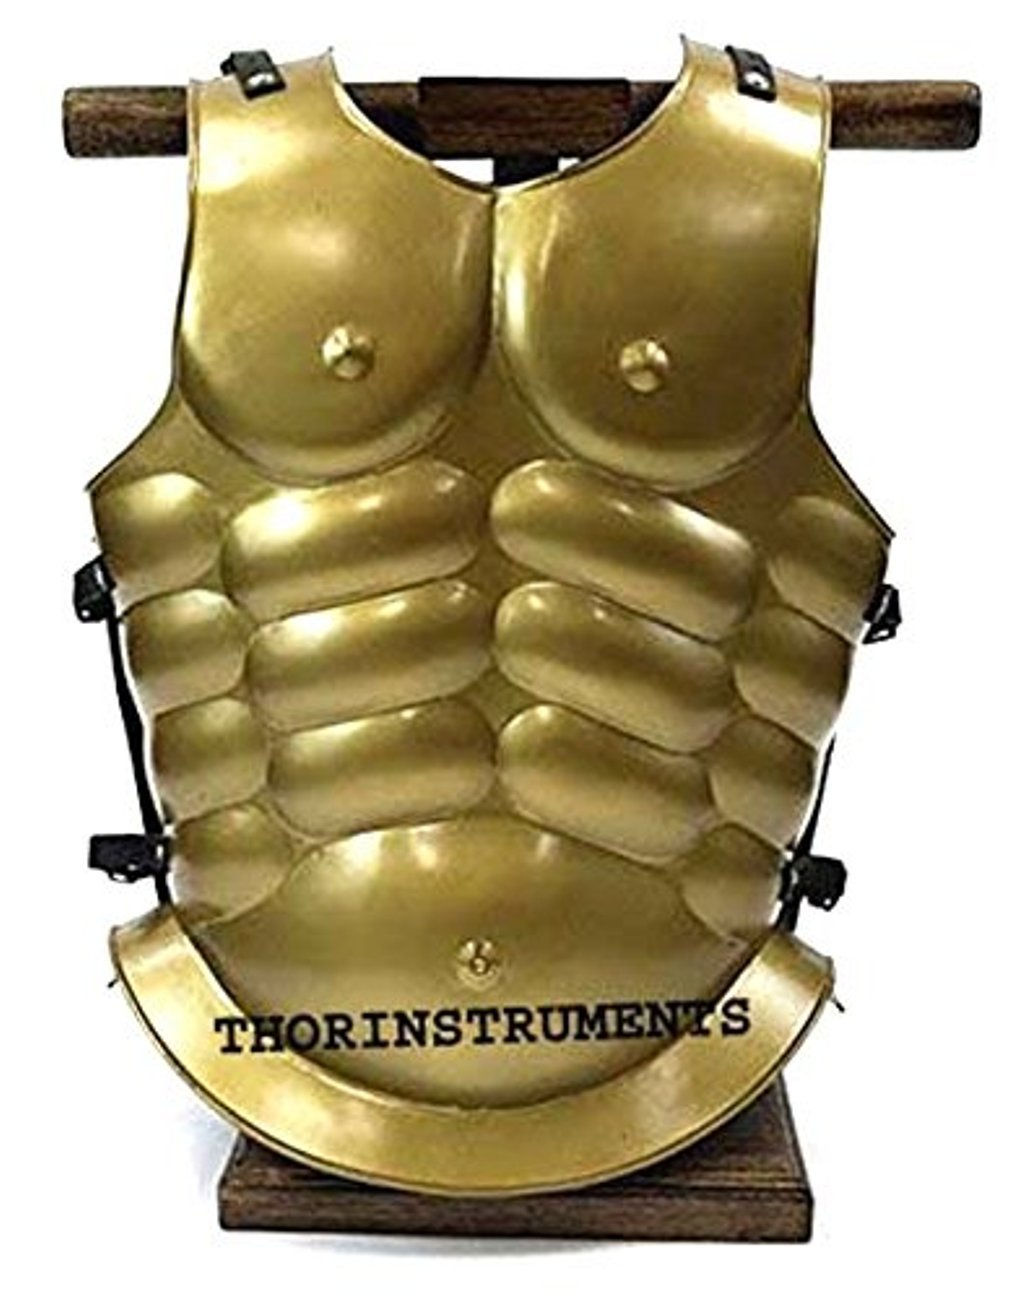 THORINSTRUMENTS Roman Muscle Armor Antique Brass Jacket Collectible Replica RENACTMENT Costume by THORINSTRUMENTS